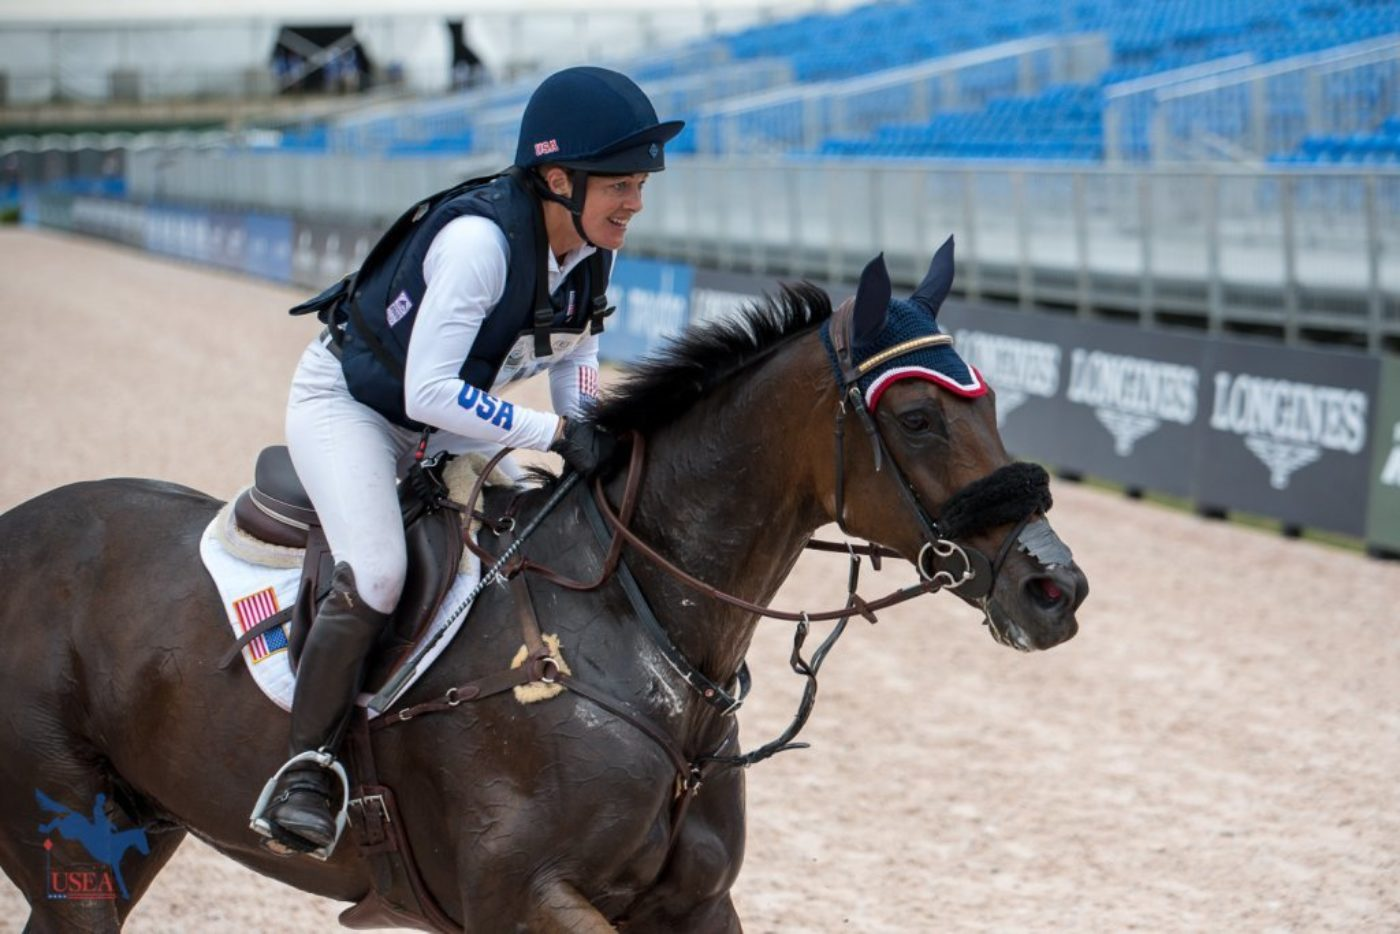 Lynn Symanksy and Donner bringing it home for Team USA. USEA/Jessica Duffy Photo.